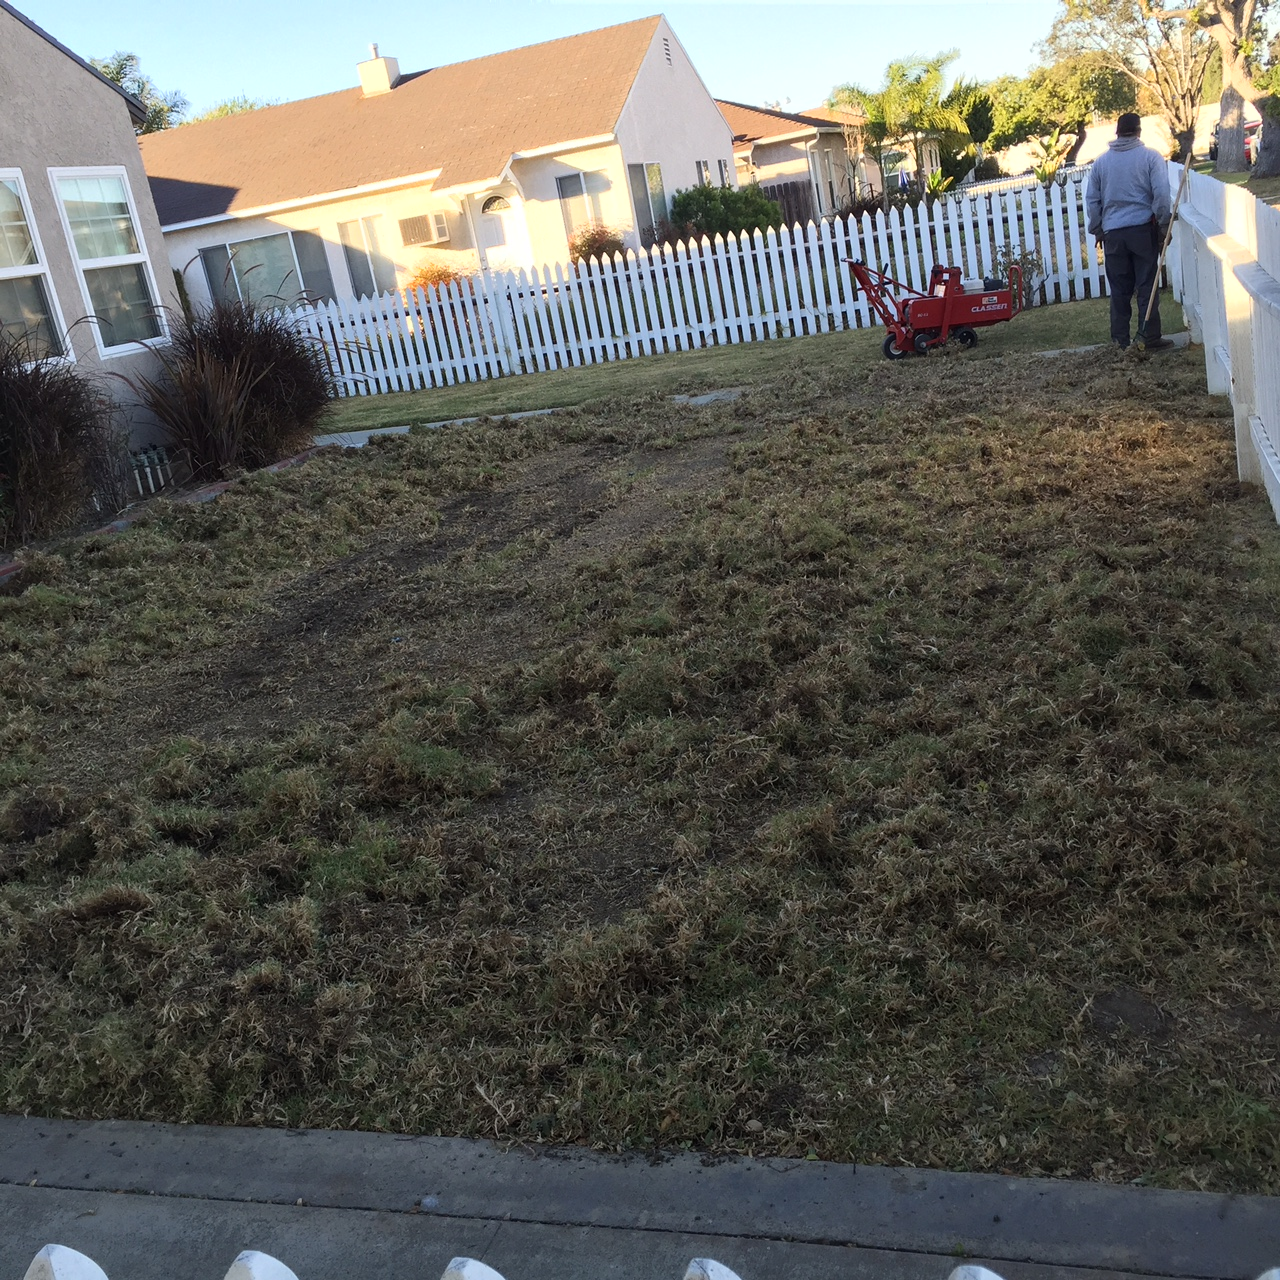 Euclid Property during lawn removal process.